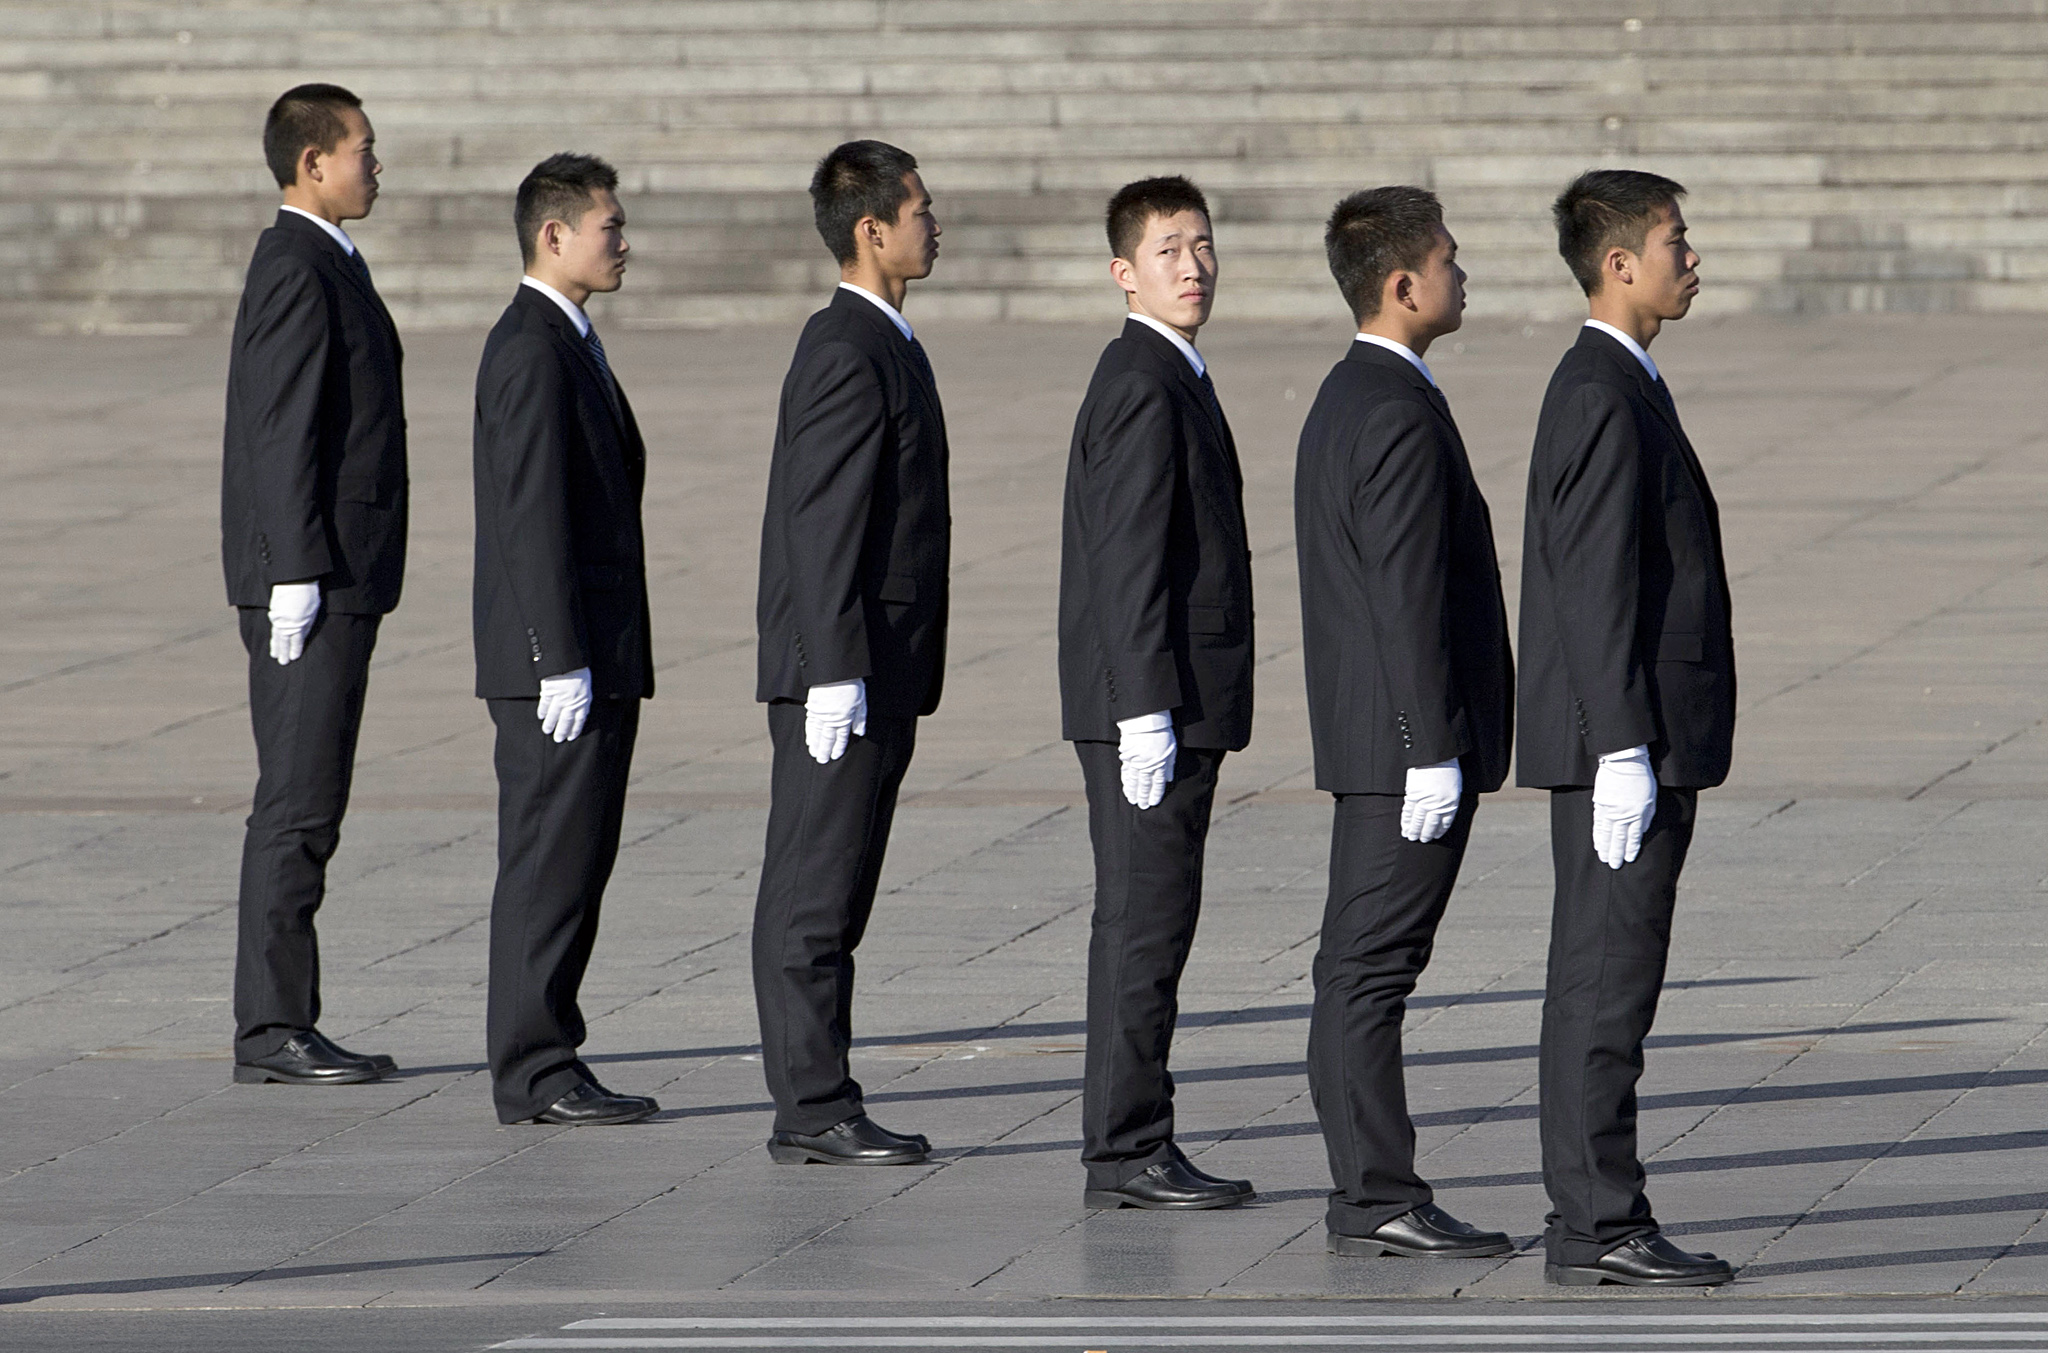 Chinese security personnel form up before the arrival of delegates at the Great Hall of the People to attend sessions of National People's Congress and Chinese People's Political Consultative Conference in Beijing, China, Tuesday, March 4, 2014